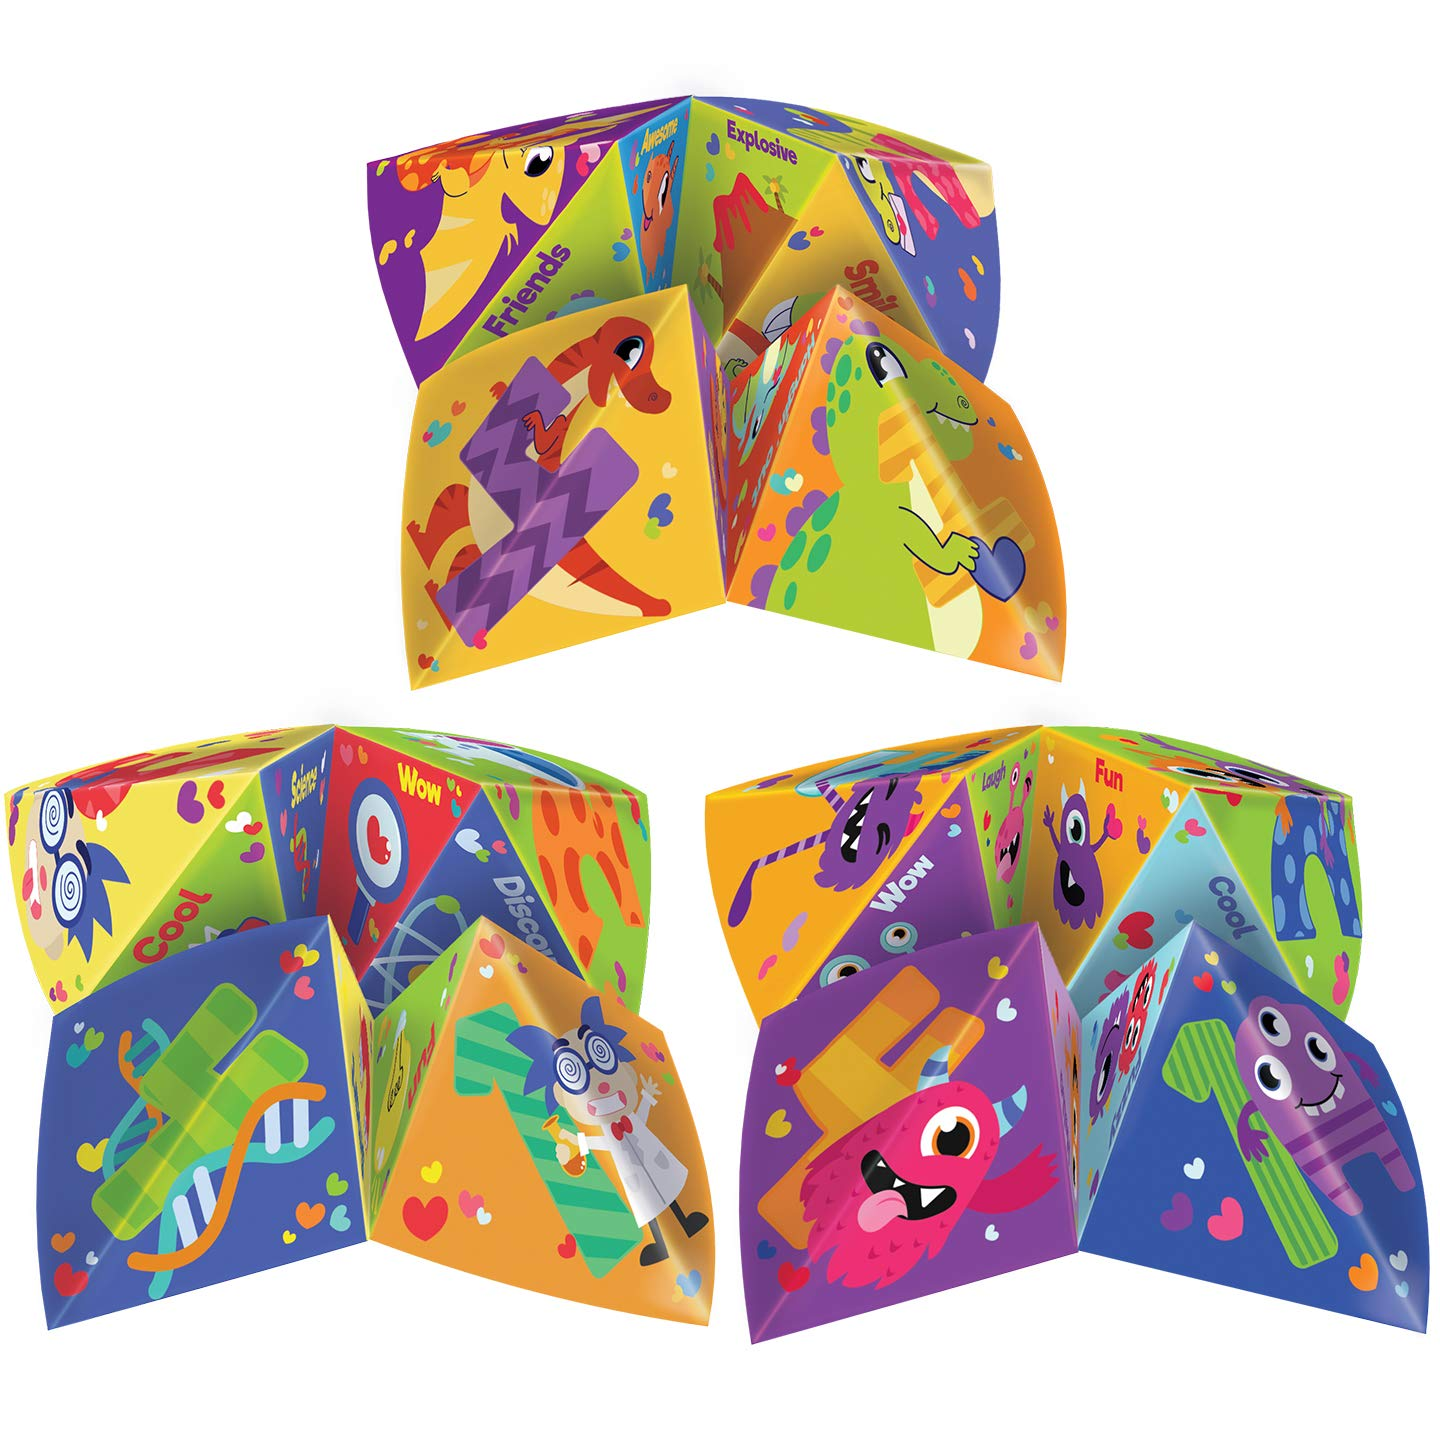 42 Valentines Day Cootie Catcher Cards Game with Envelopes Giveaways Goodies Treats and Family Activity Love Party Favors Supplies Great for Kids Card Games Joyin Inc School Classroom Games